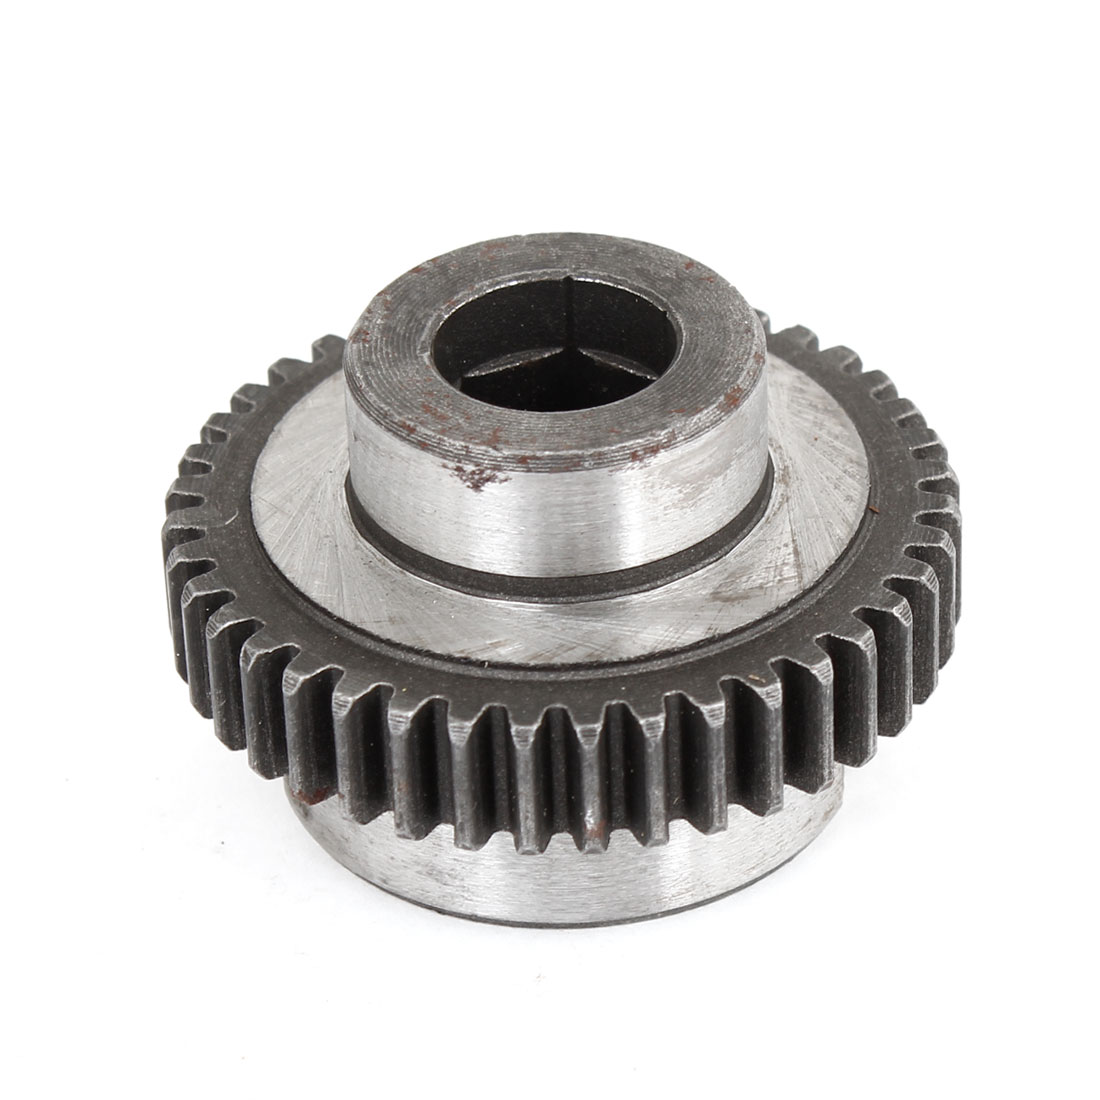 52mm x 15mm x 33mm Repairing Parts 40T Spiral Bevel Gear for Hitachi 38E